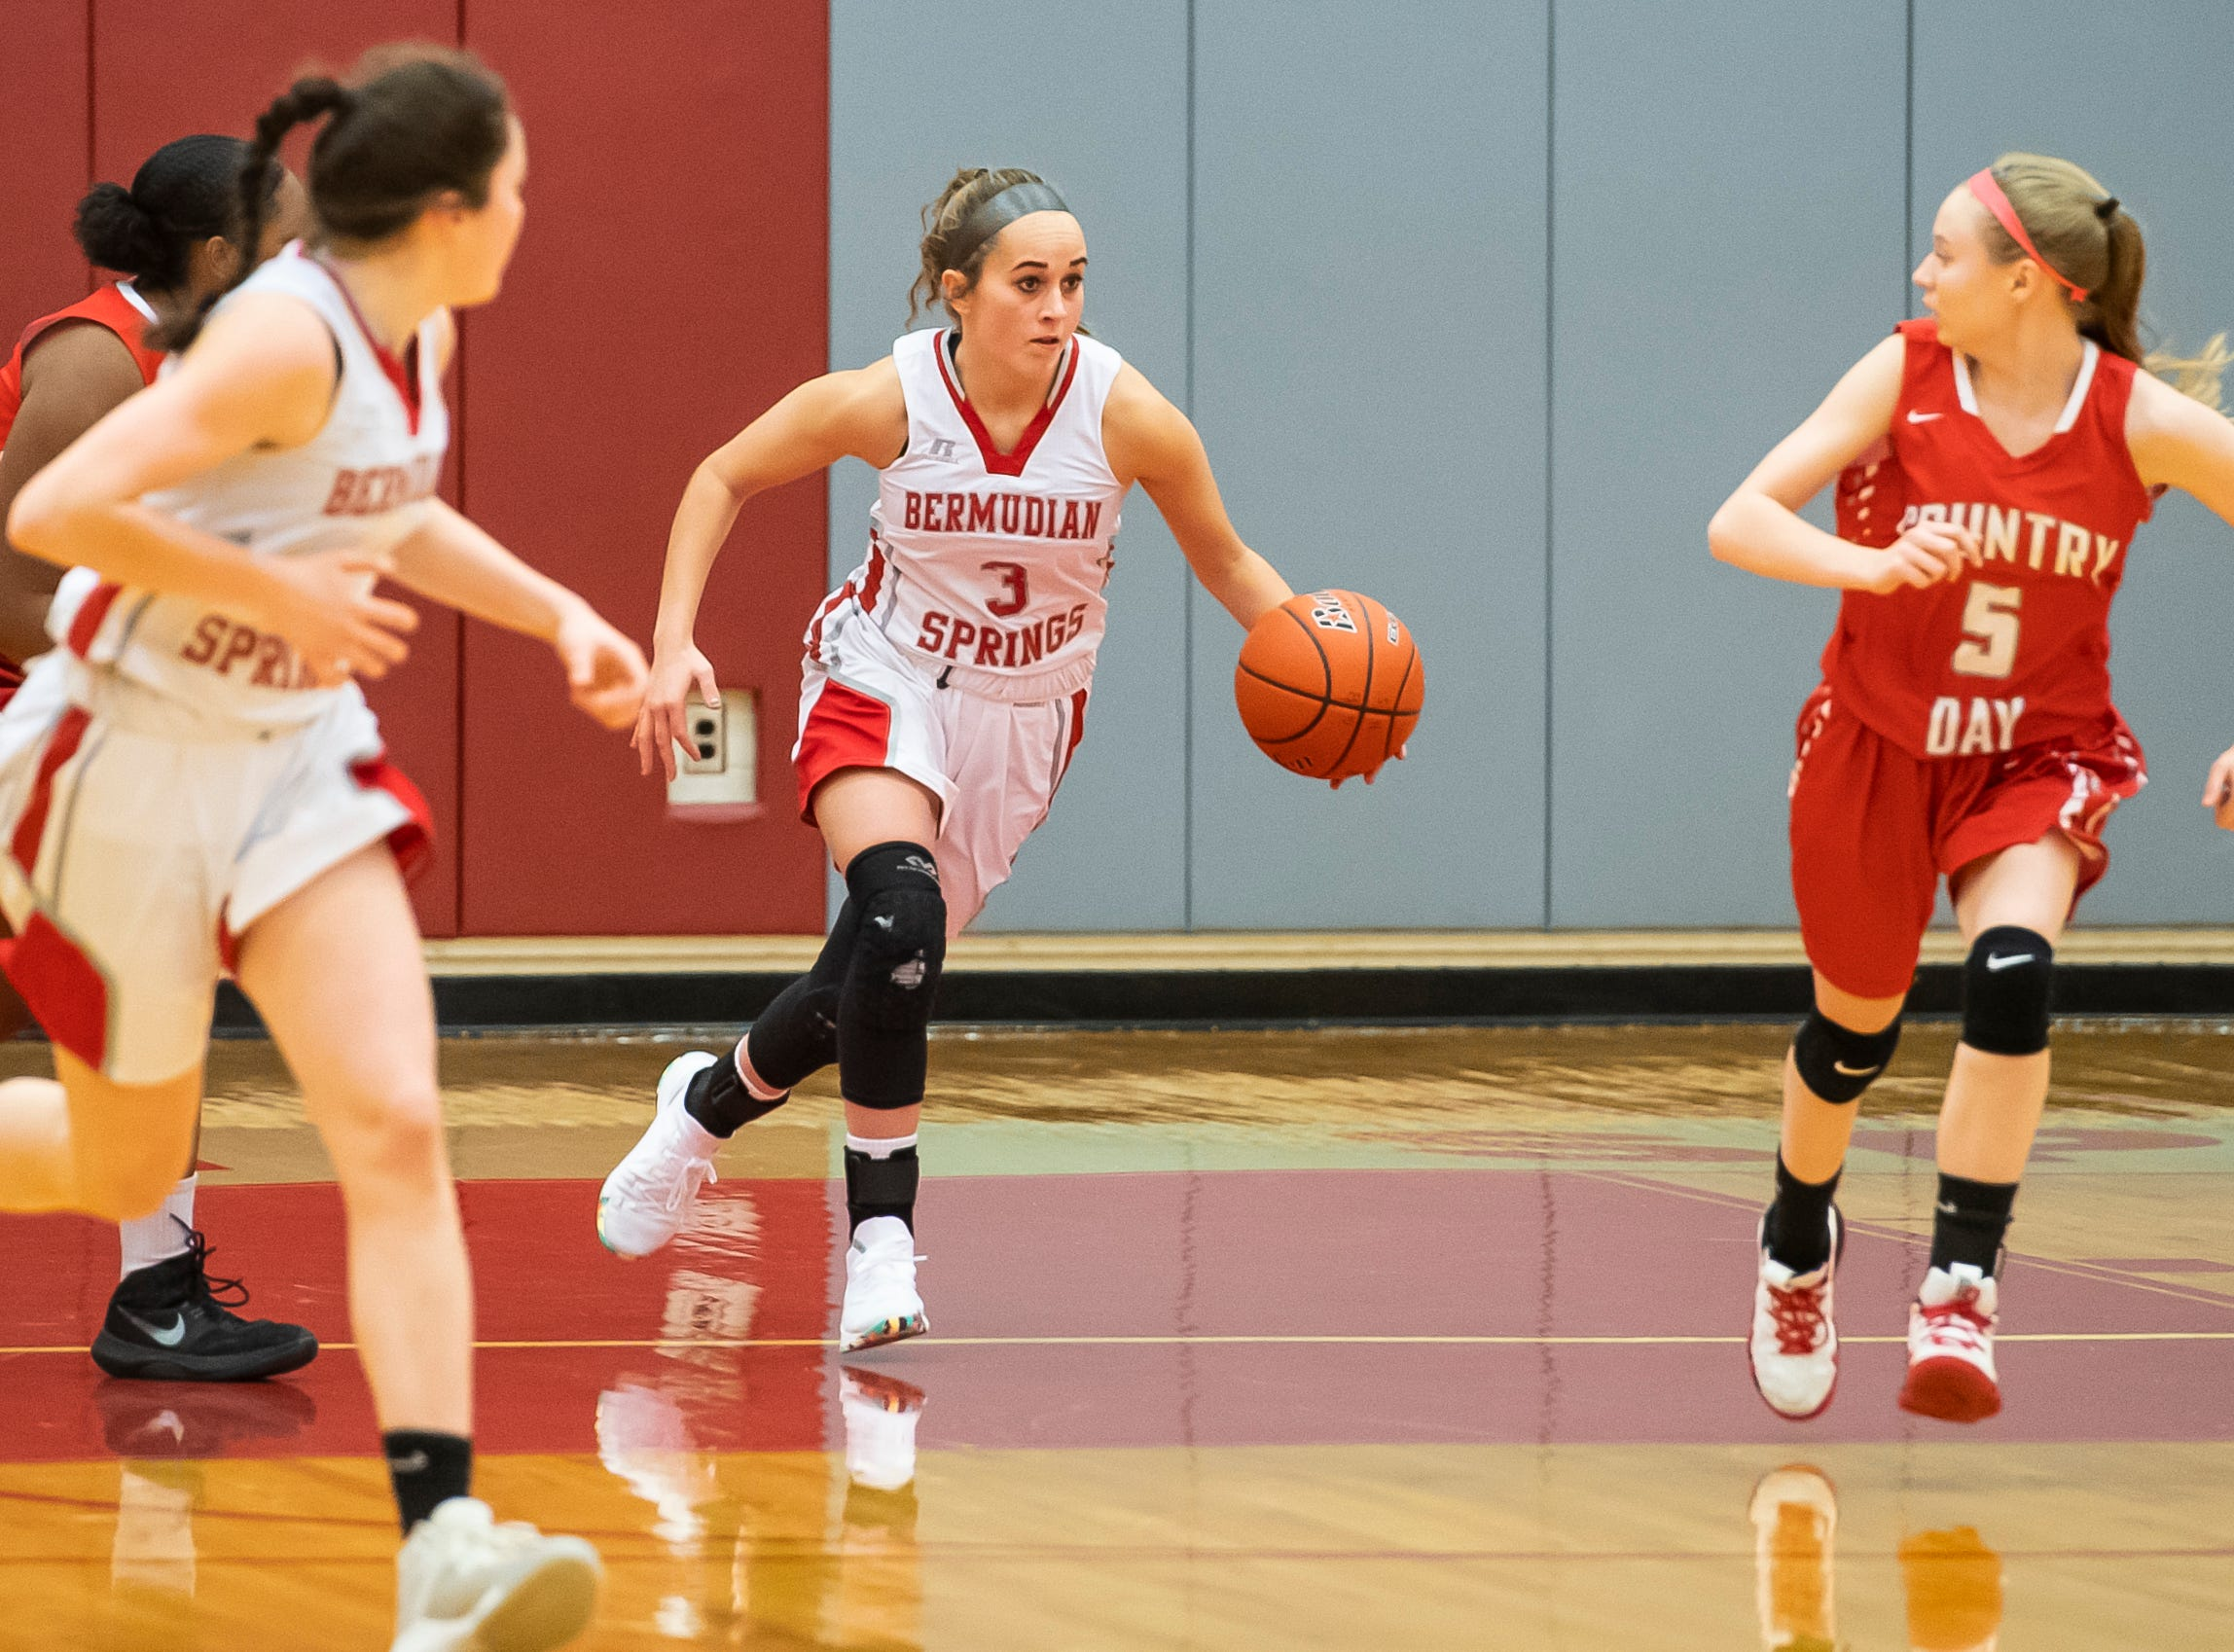 Bermudian Springs' Skyler West dribbles down the court during play against York Country Day School at Bermudian Springs High School on Monday, January 14, 2019. The Eagles won 59-20.